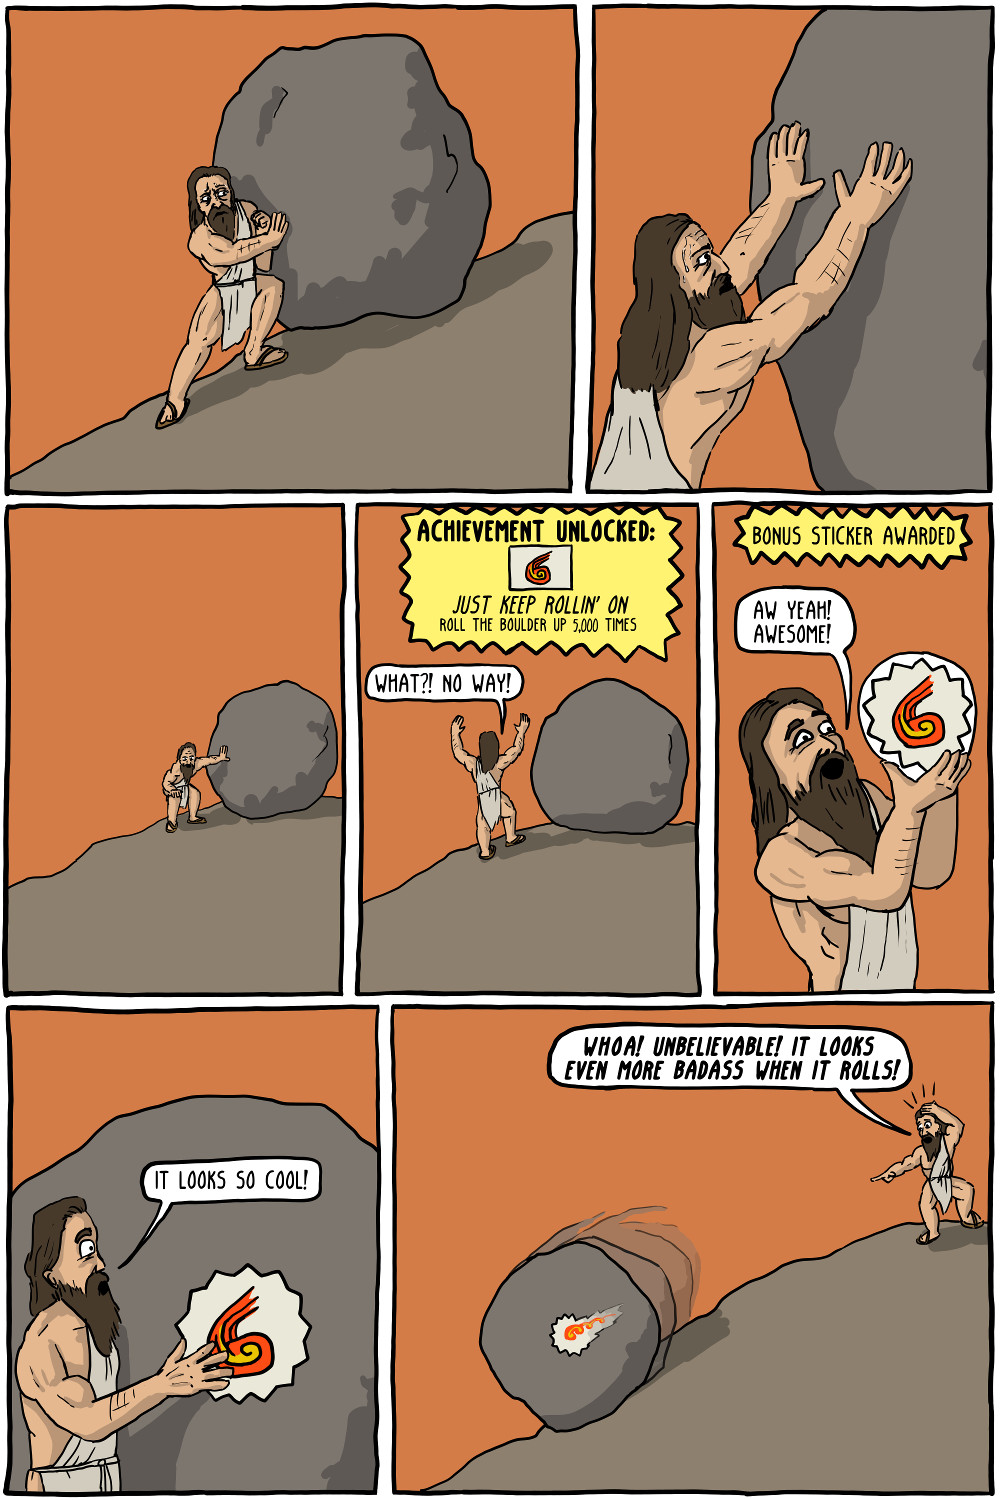 We Must Imagine Sisyphus Happy